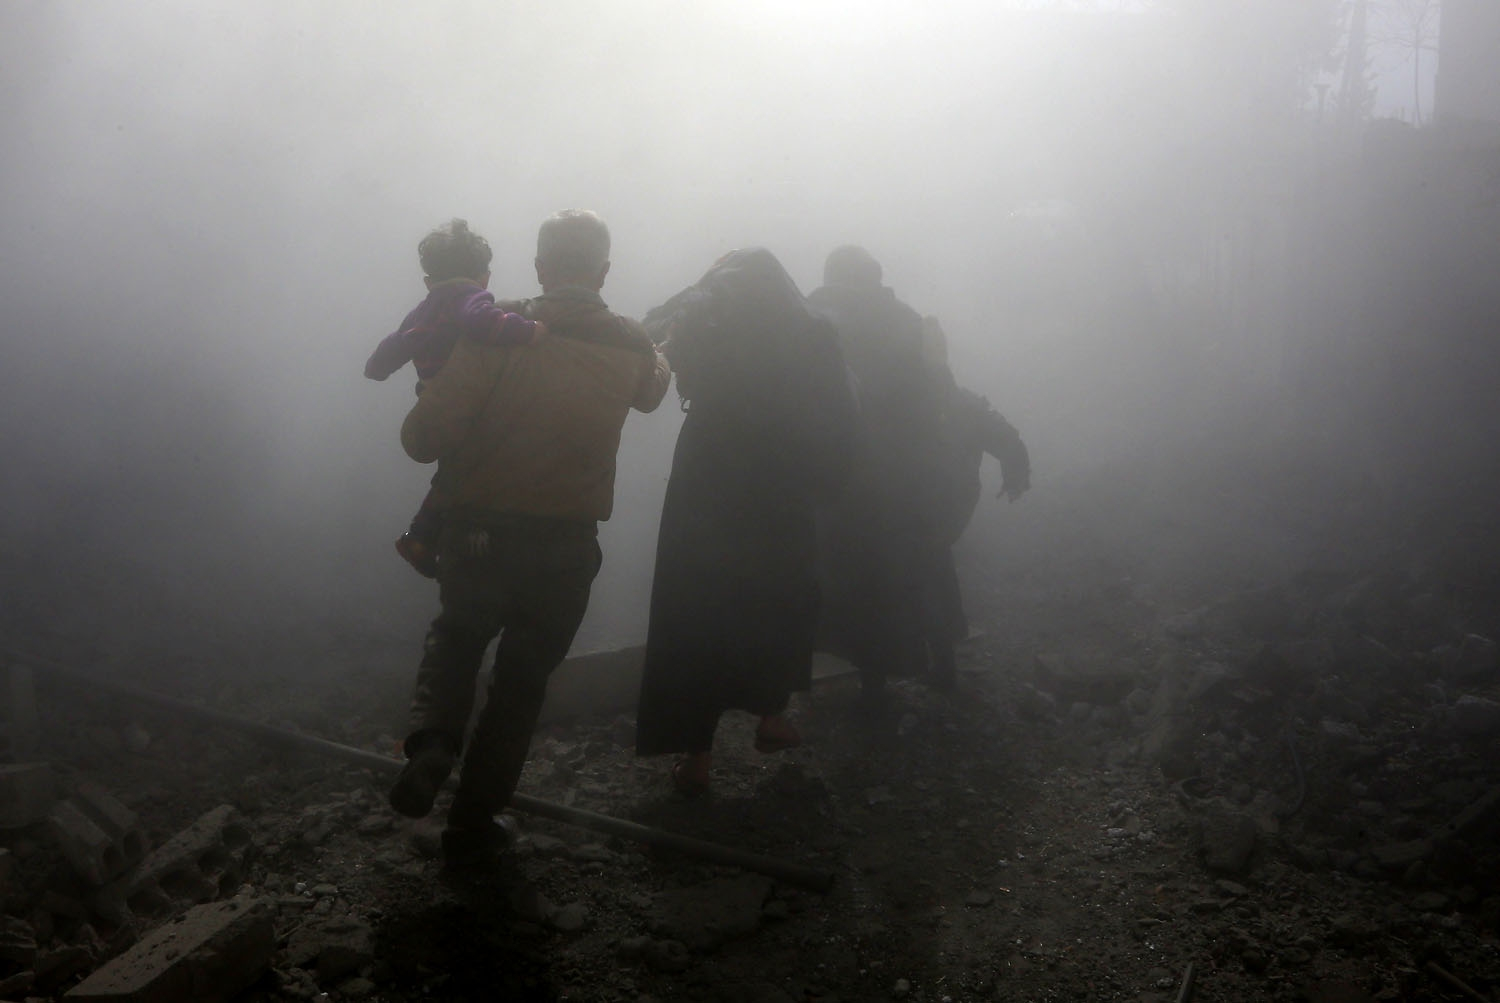 A Syrian family walks through a dust cloud while fleeing from reported regime air strikes in the rebel-held town of Jisreen, in the besieged Eastern Ghouta region on the outskirts of the capital Damascus, on February 8, 2018.